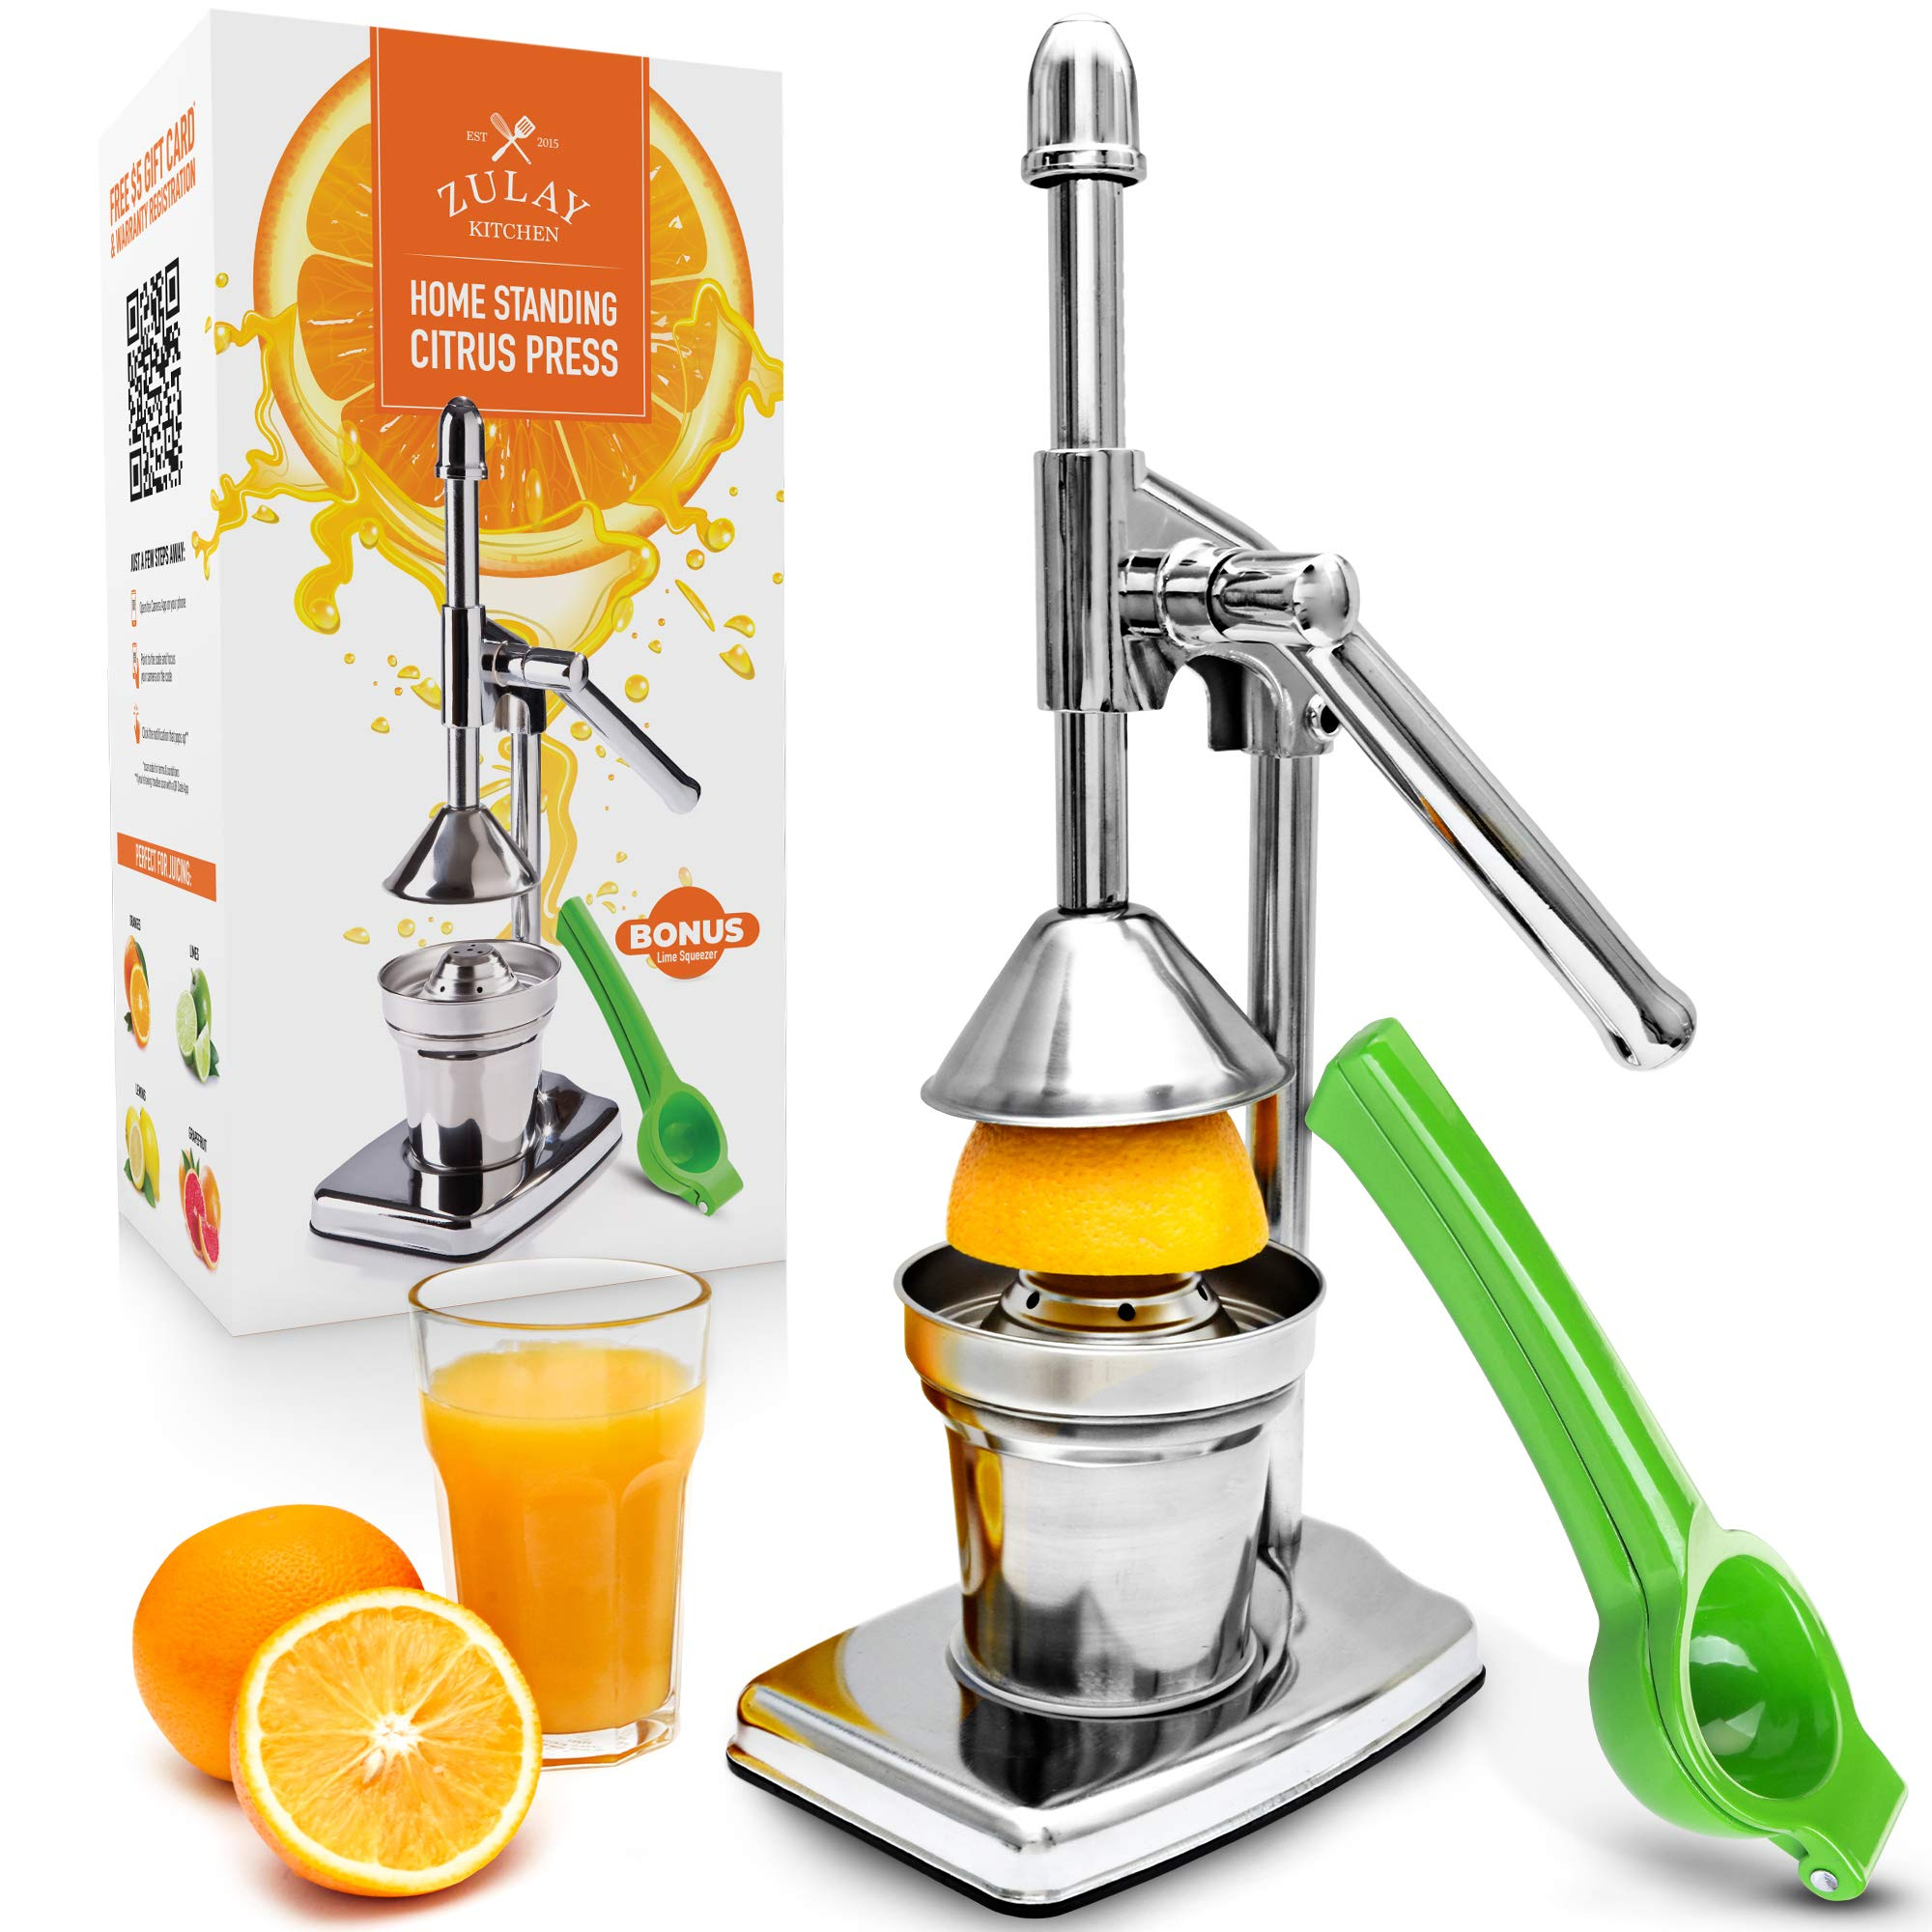 Zulay Professional Citrus Juice Press - Small Manual Juice Press and Orange Squeezer with Bonus Metal Lime Squeezer, Premium Heavy Duty Mini Orange Juice Press, Lemon Squeezer & Lime Squeezer Stand by Zulay Kitchen